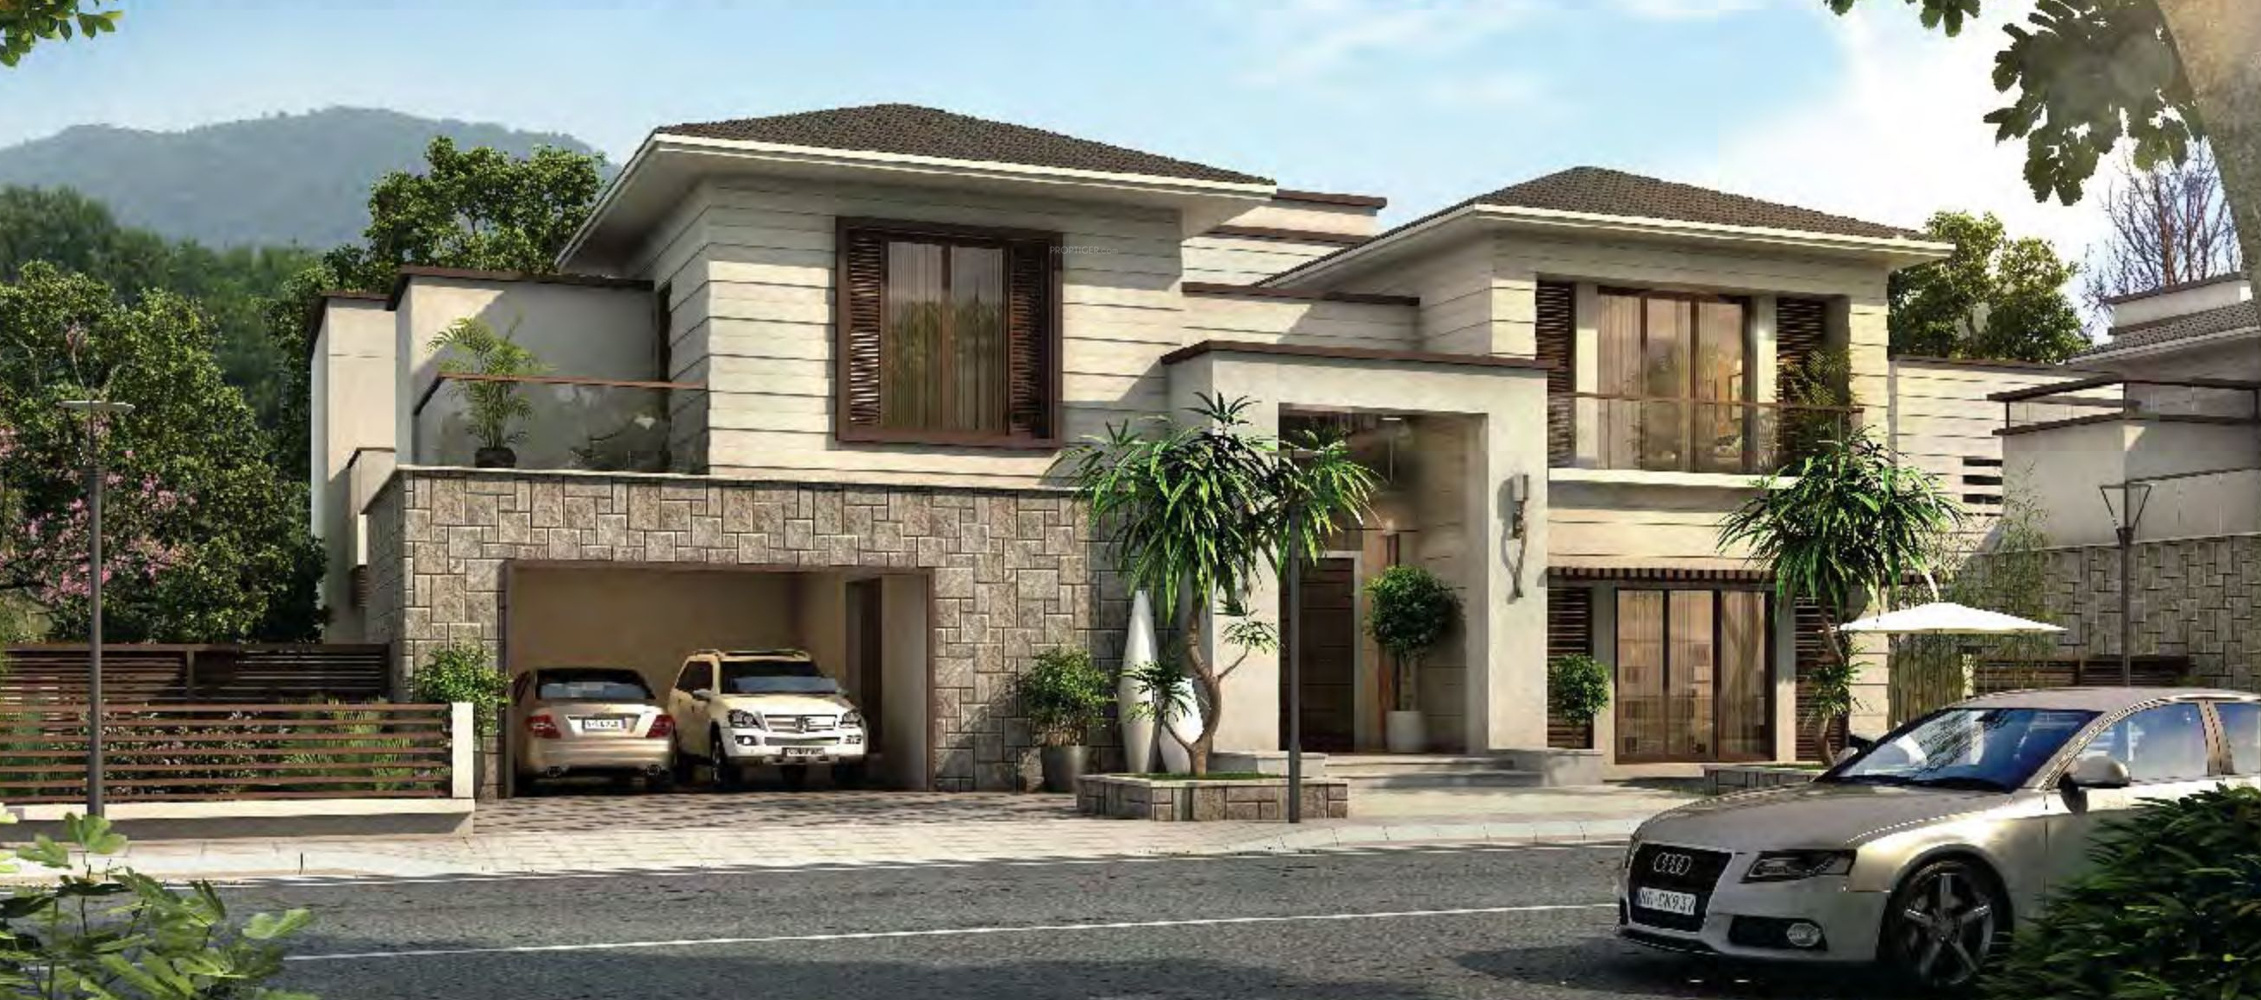 4974 sq ft 4 BHK 4T Villa for Sale in Sobha Lifestyle